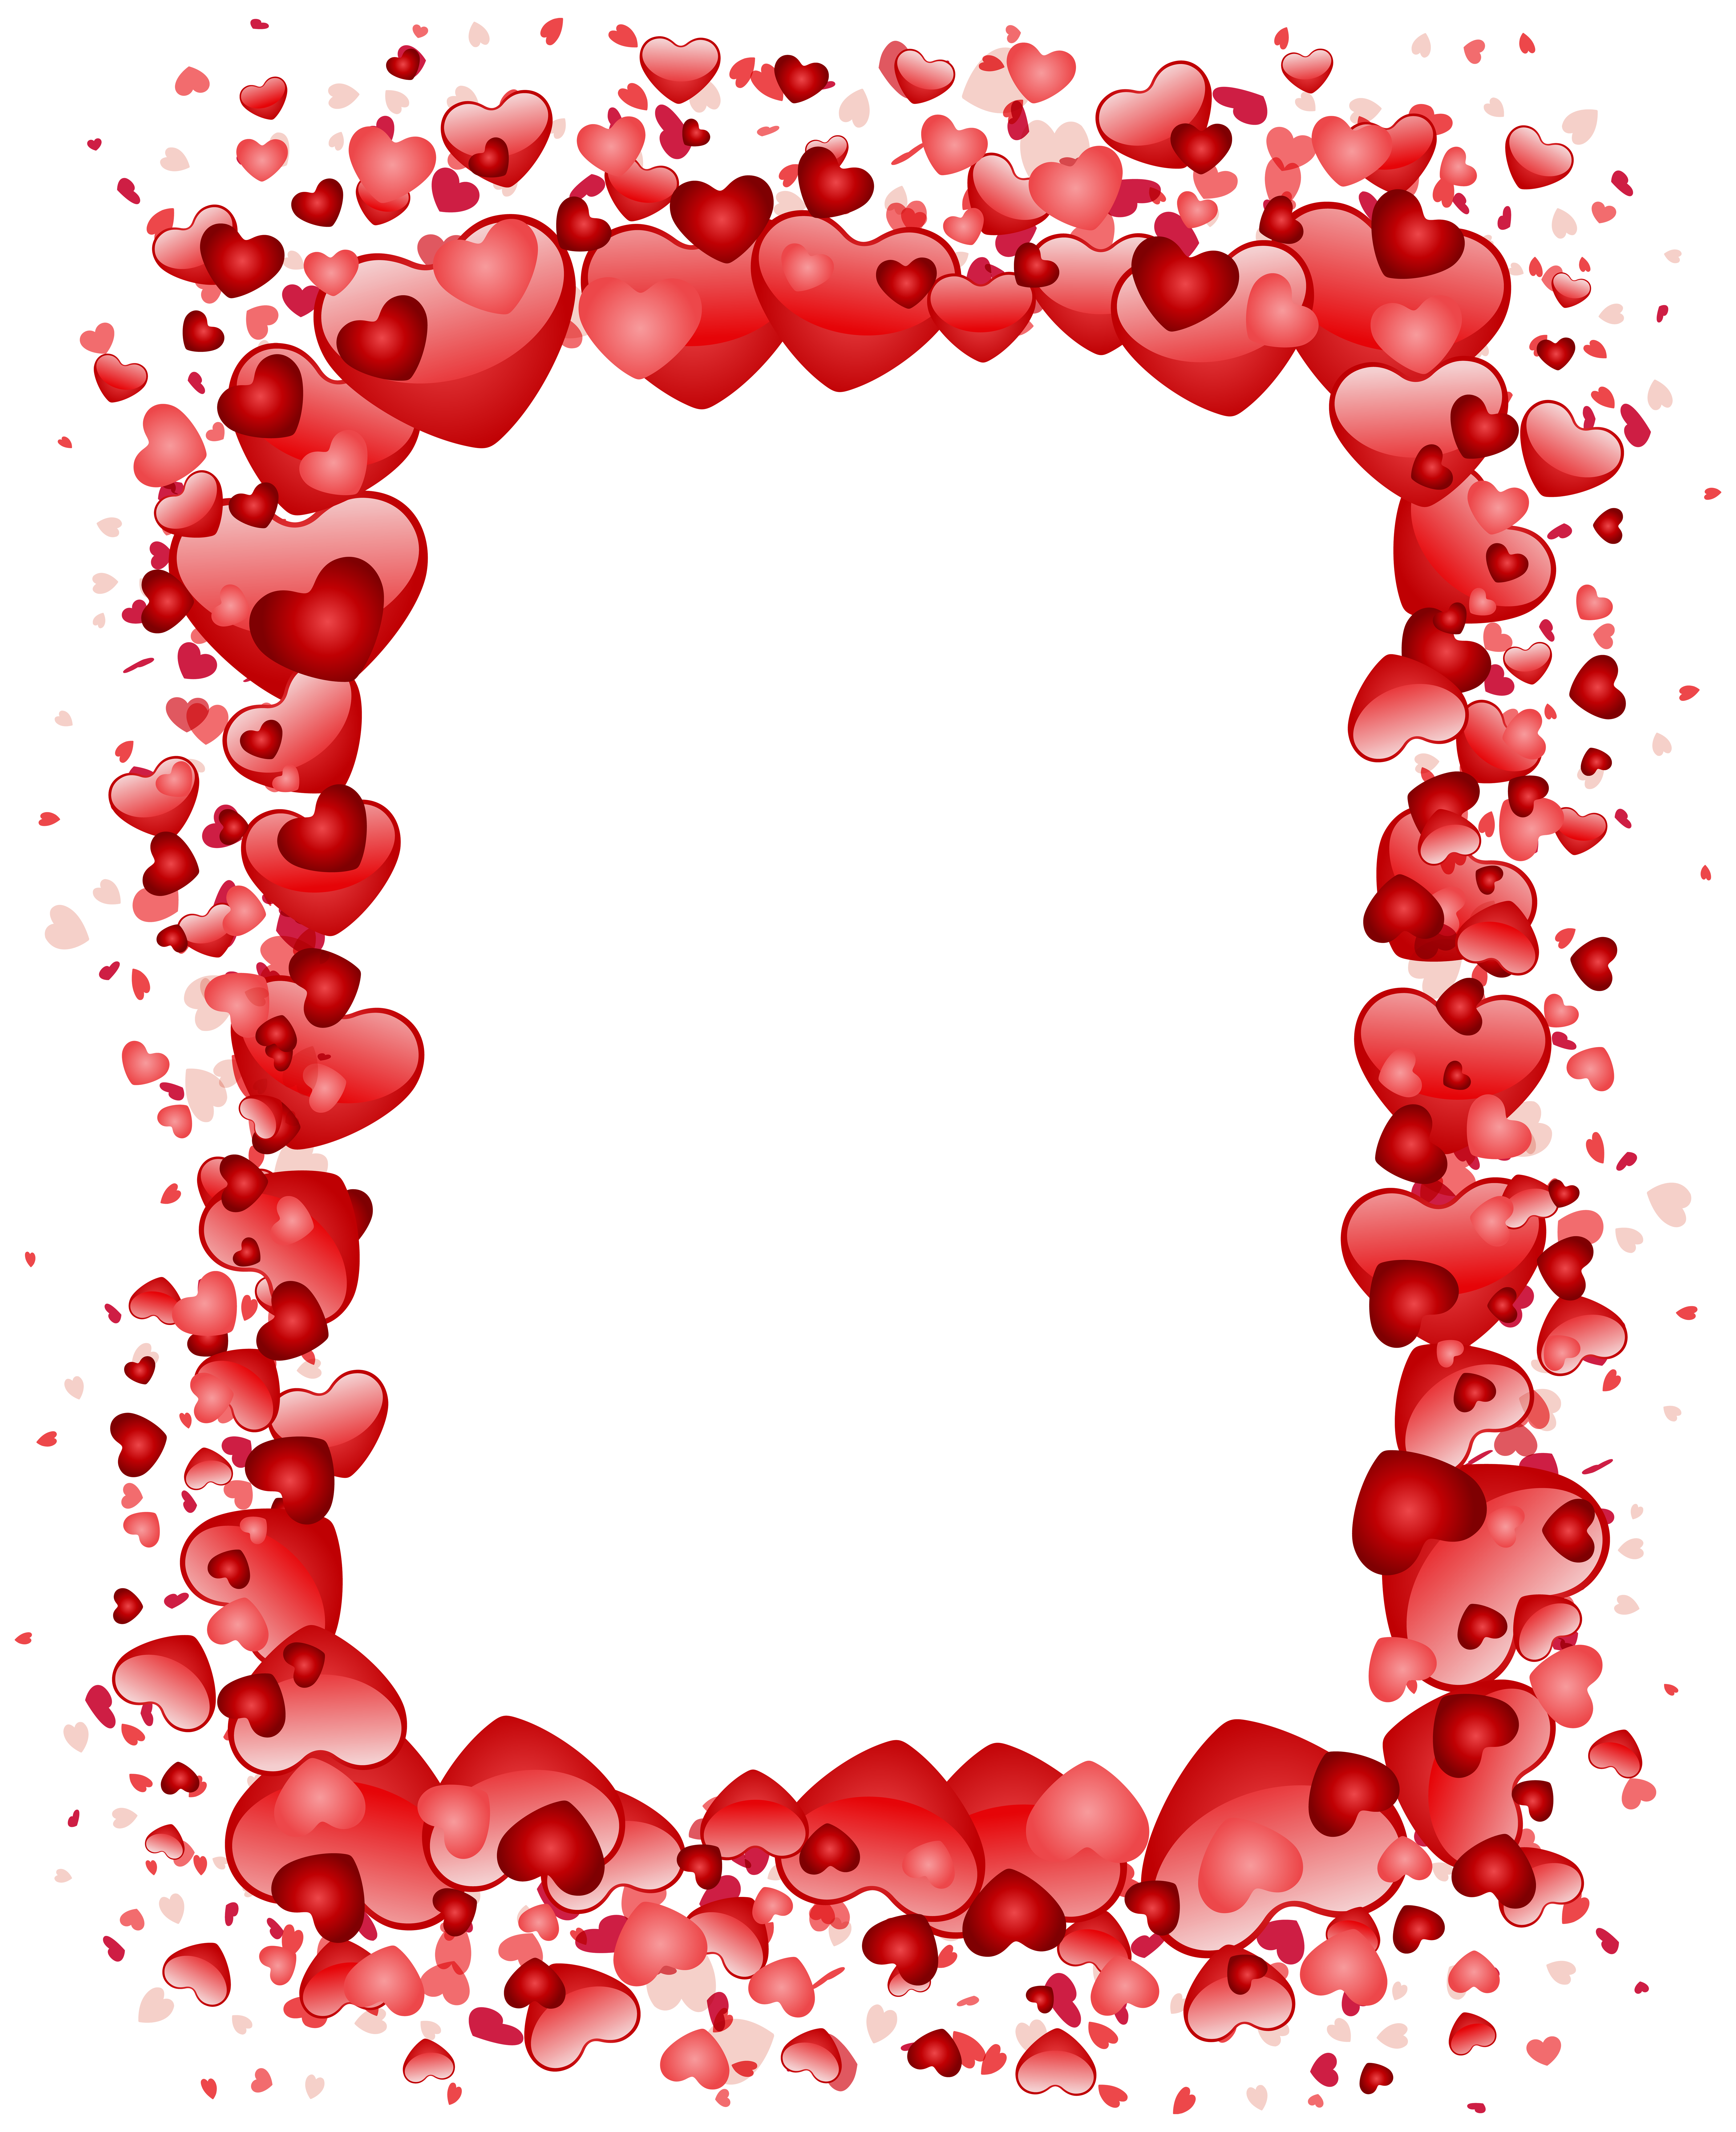 Valentine's Day Hearts Border Transparent PNG Clip Art Image.